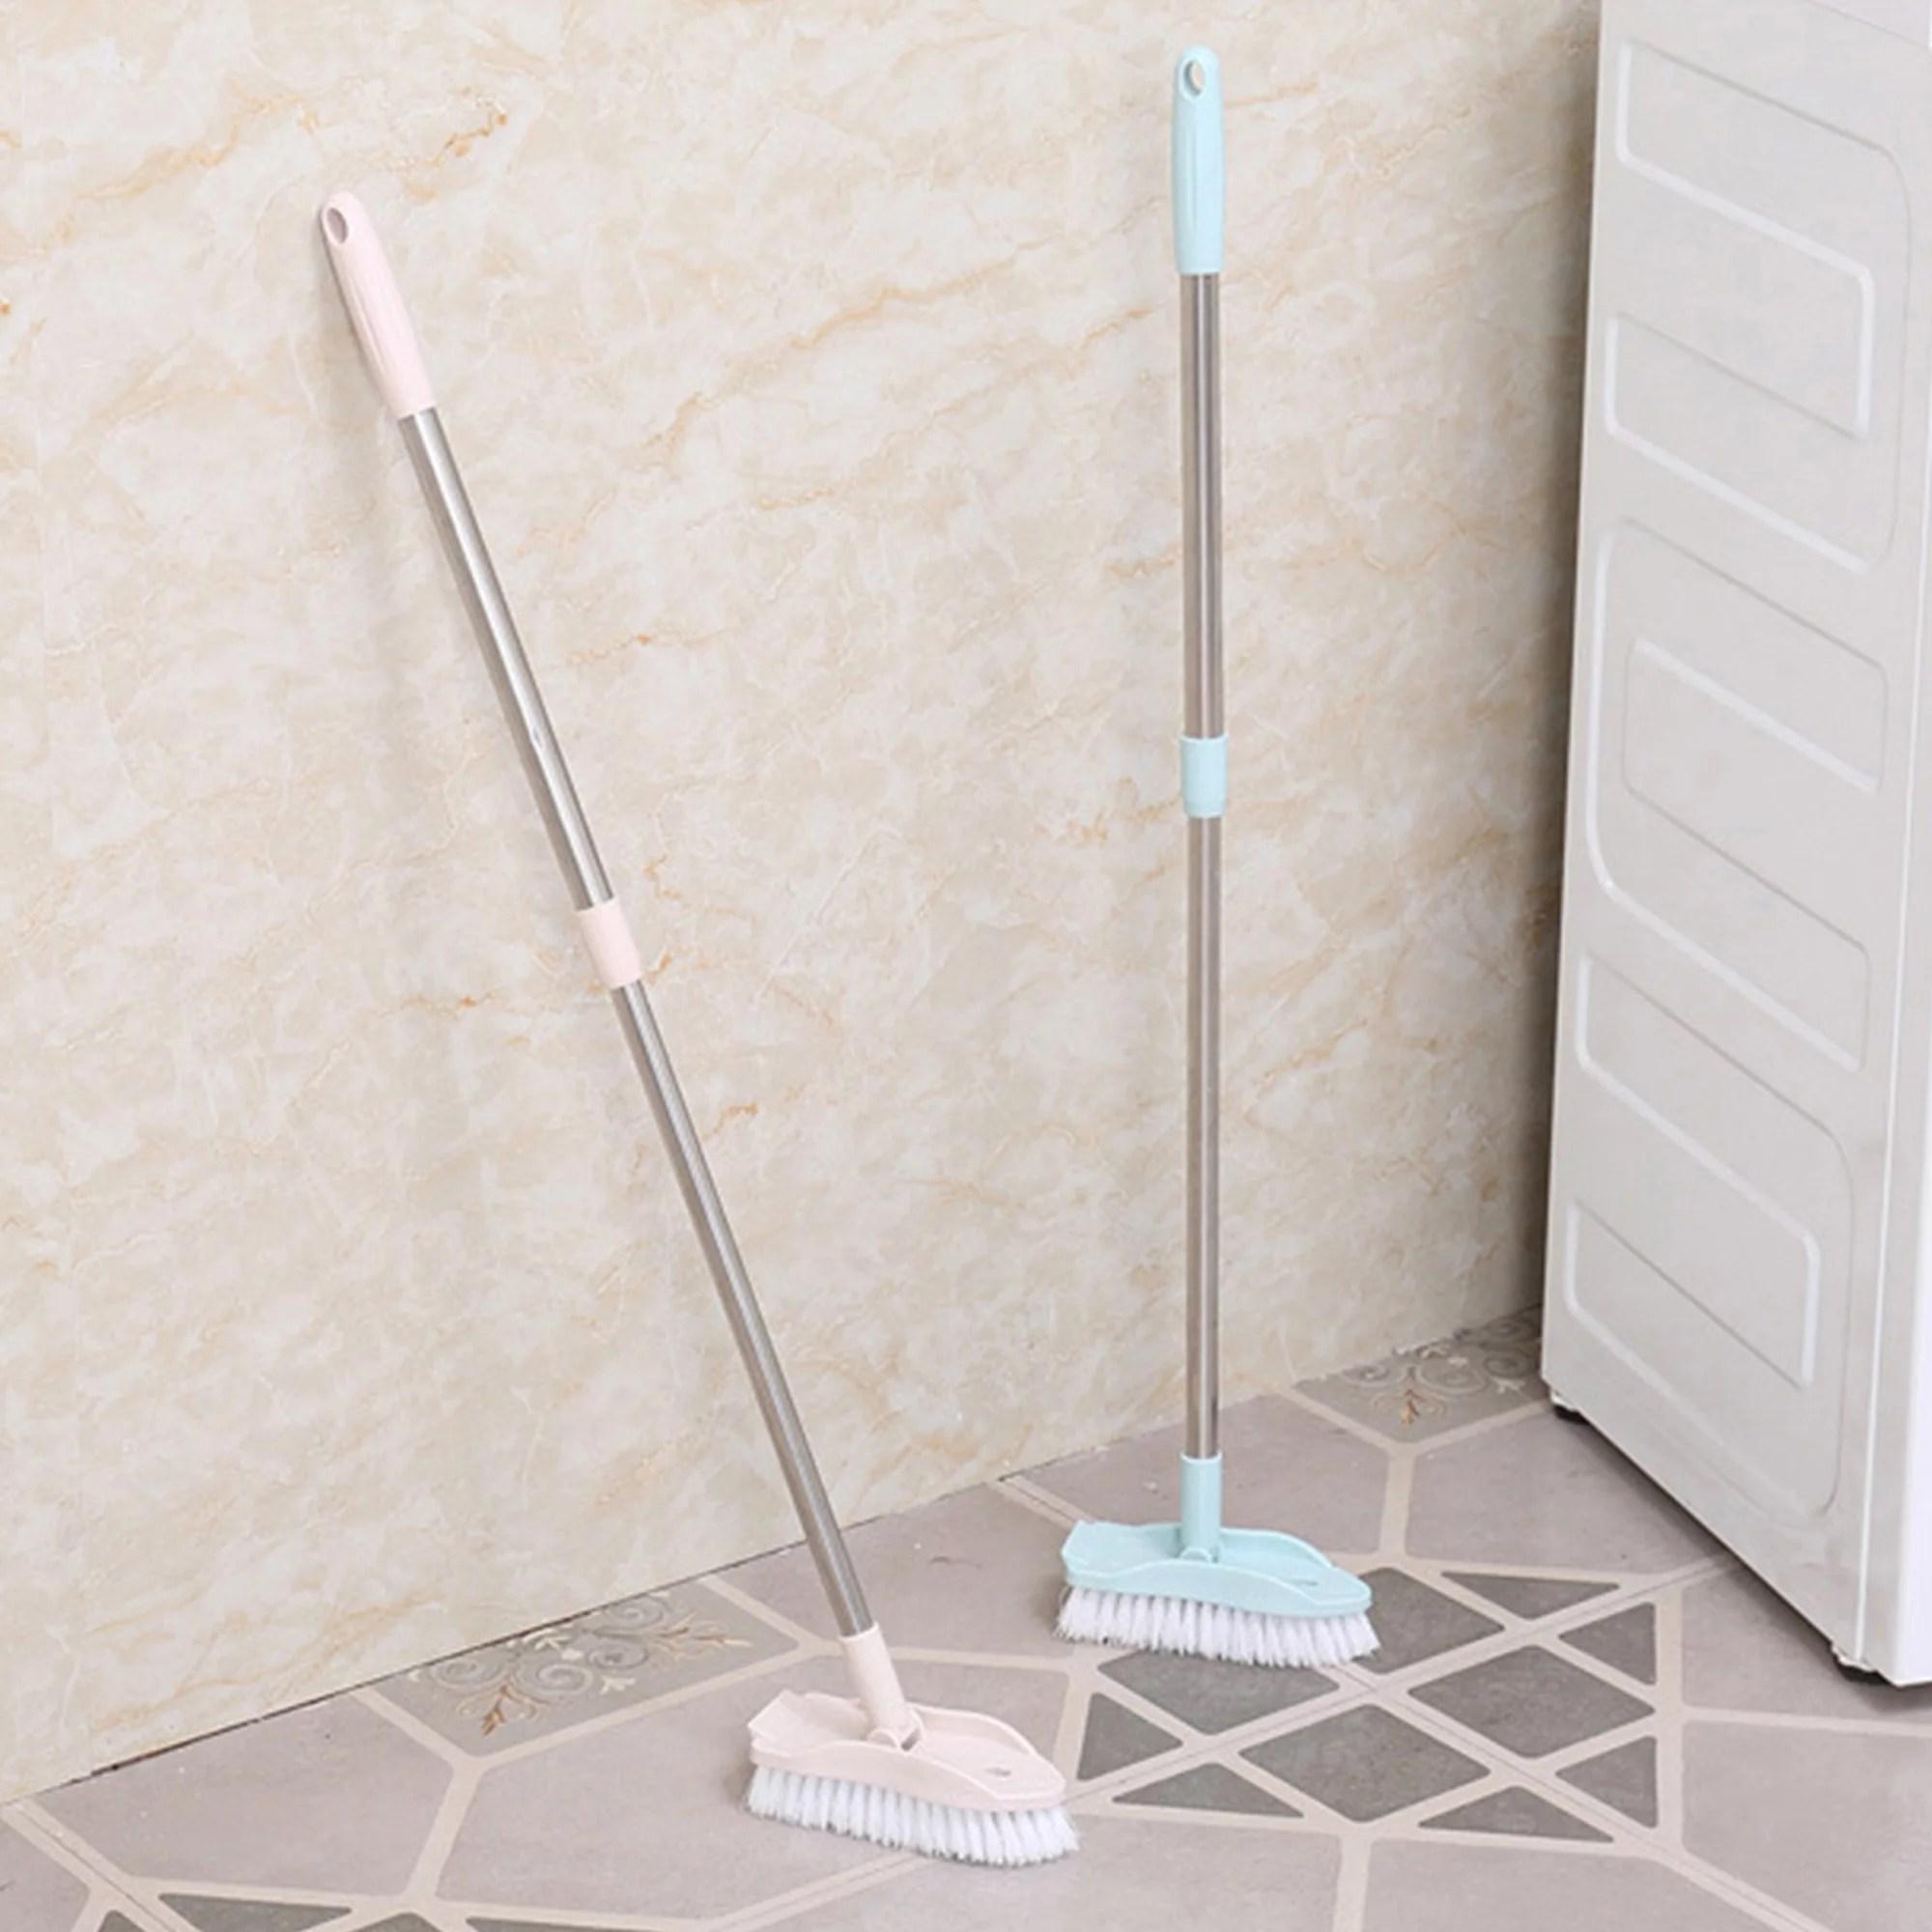 2 pack floor scrub brush with long handle adjustable stainless metal handle scrubber with stiff bristles for cleaning tile bathroom tub bathtub